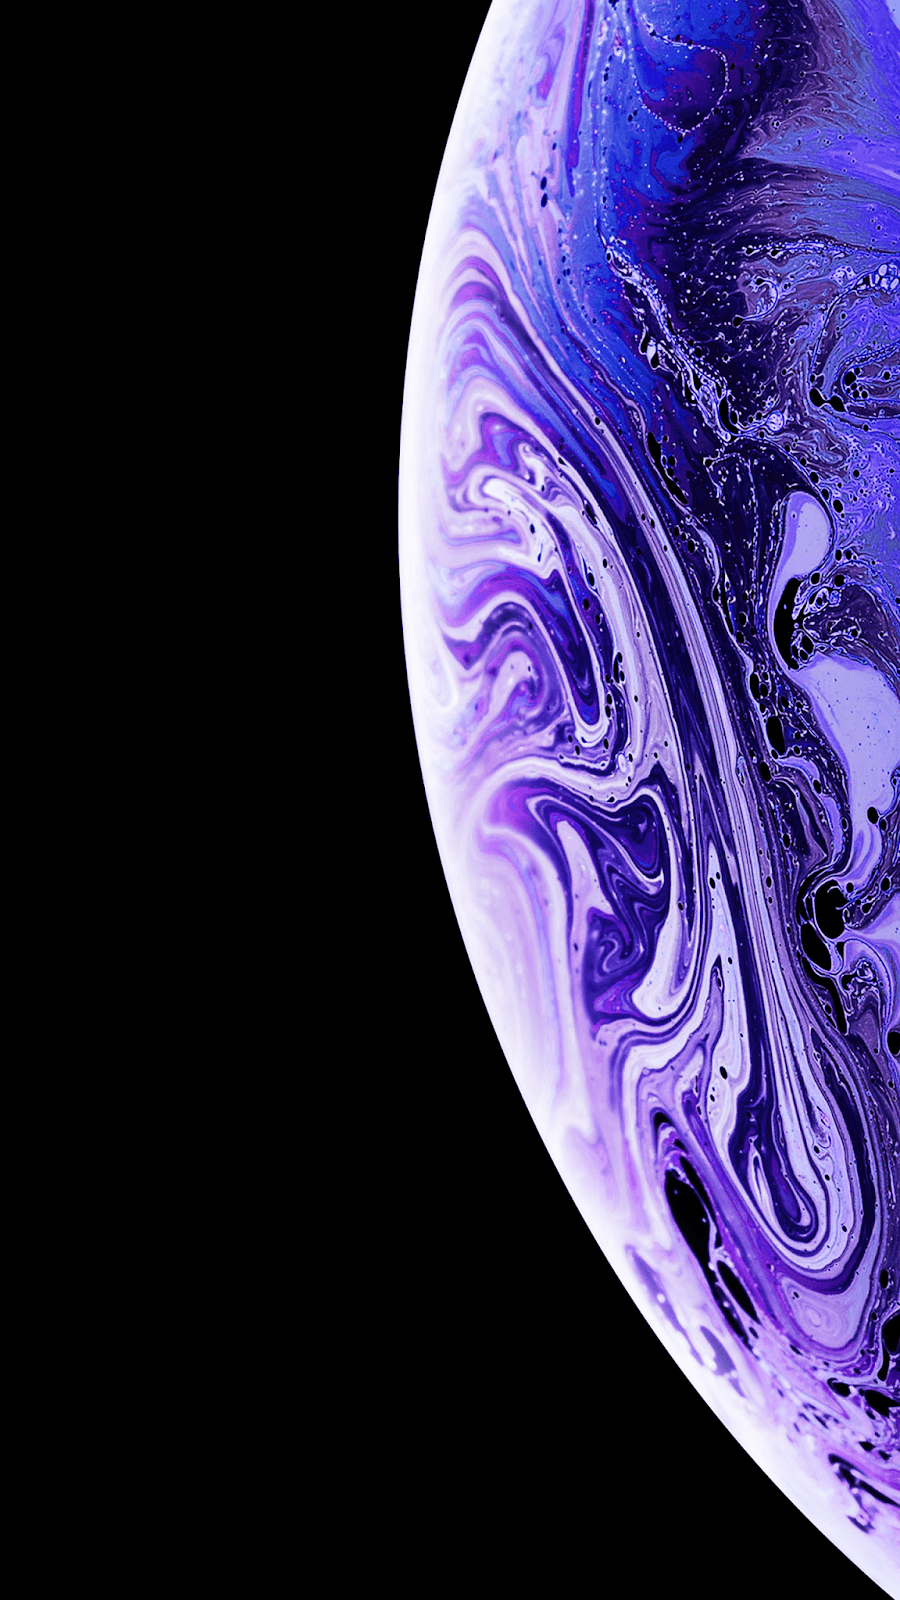 900x1600 Another iPhone X/XS/XSMAX wallpaper (for Amoled display ...